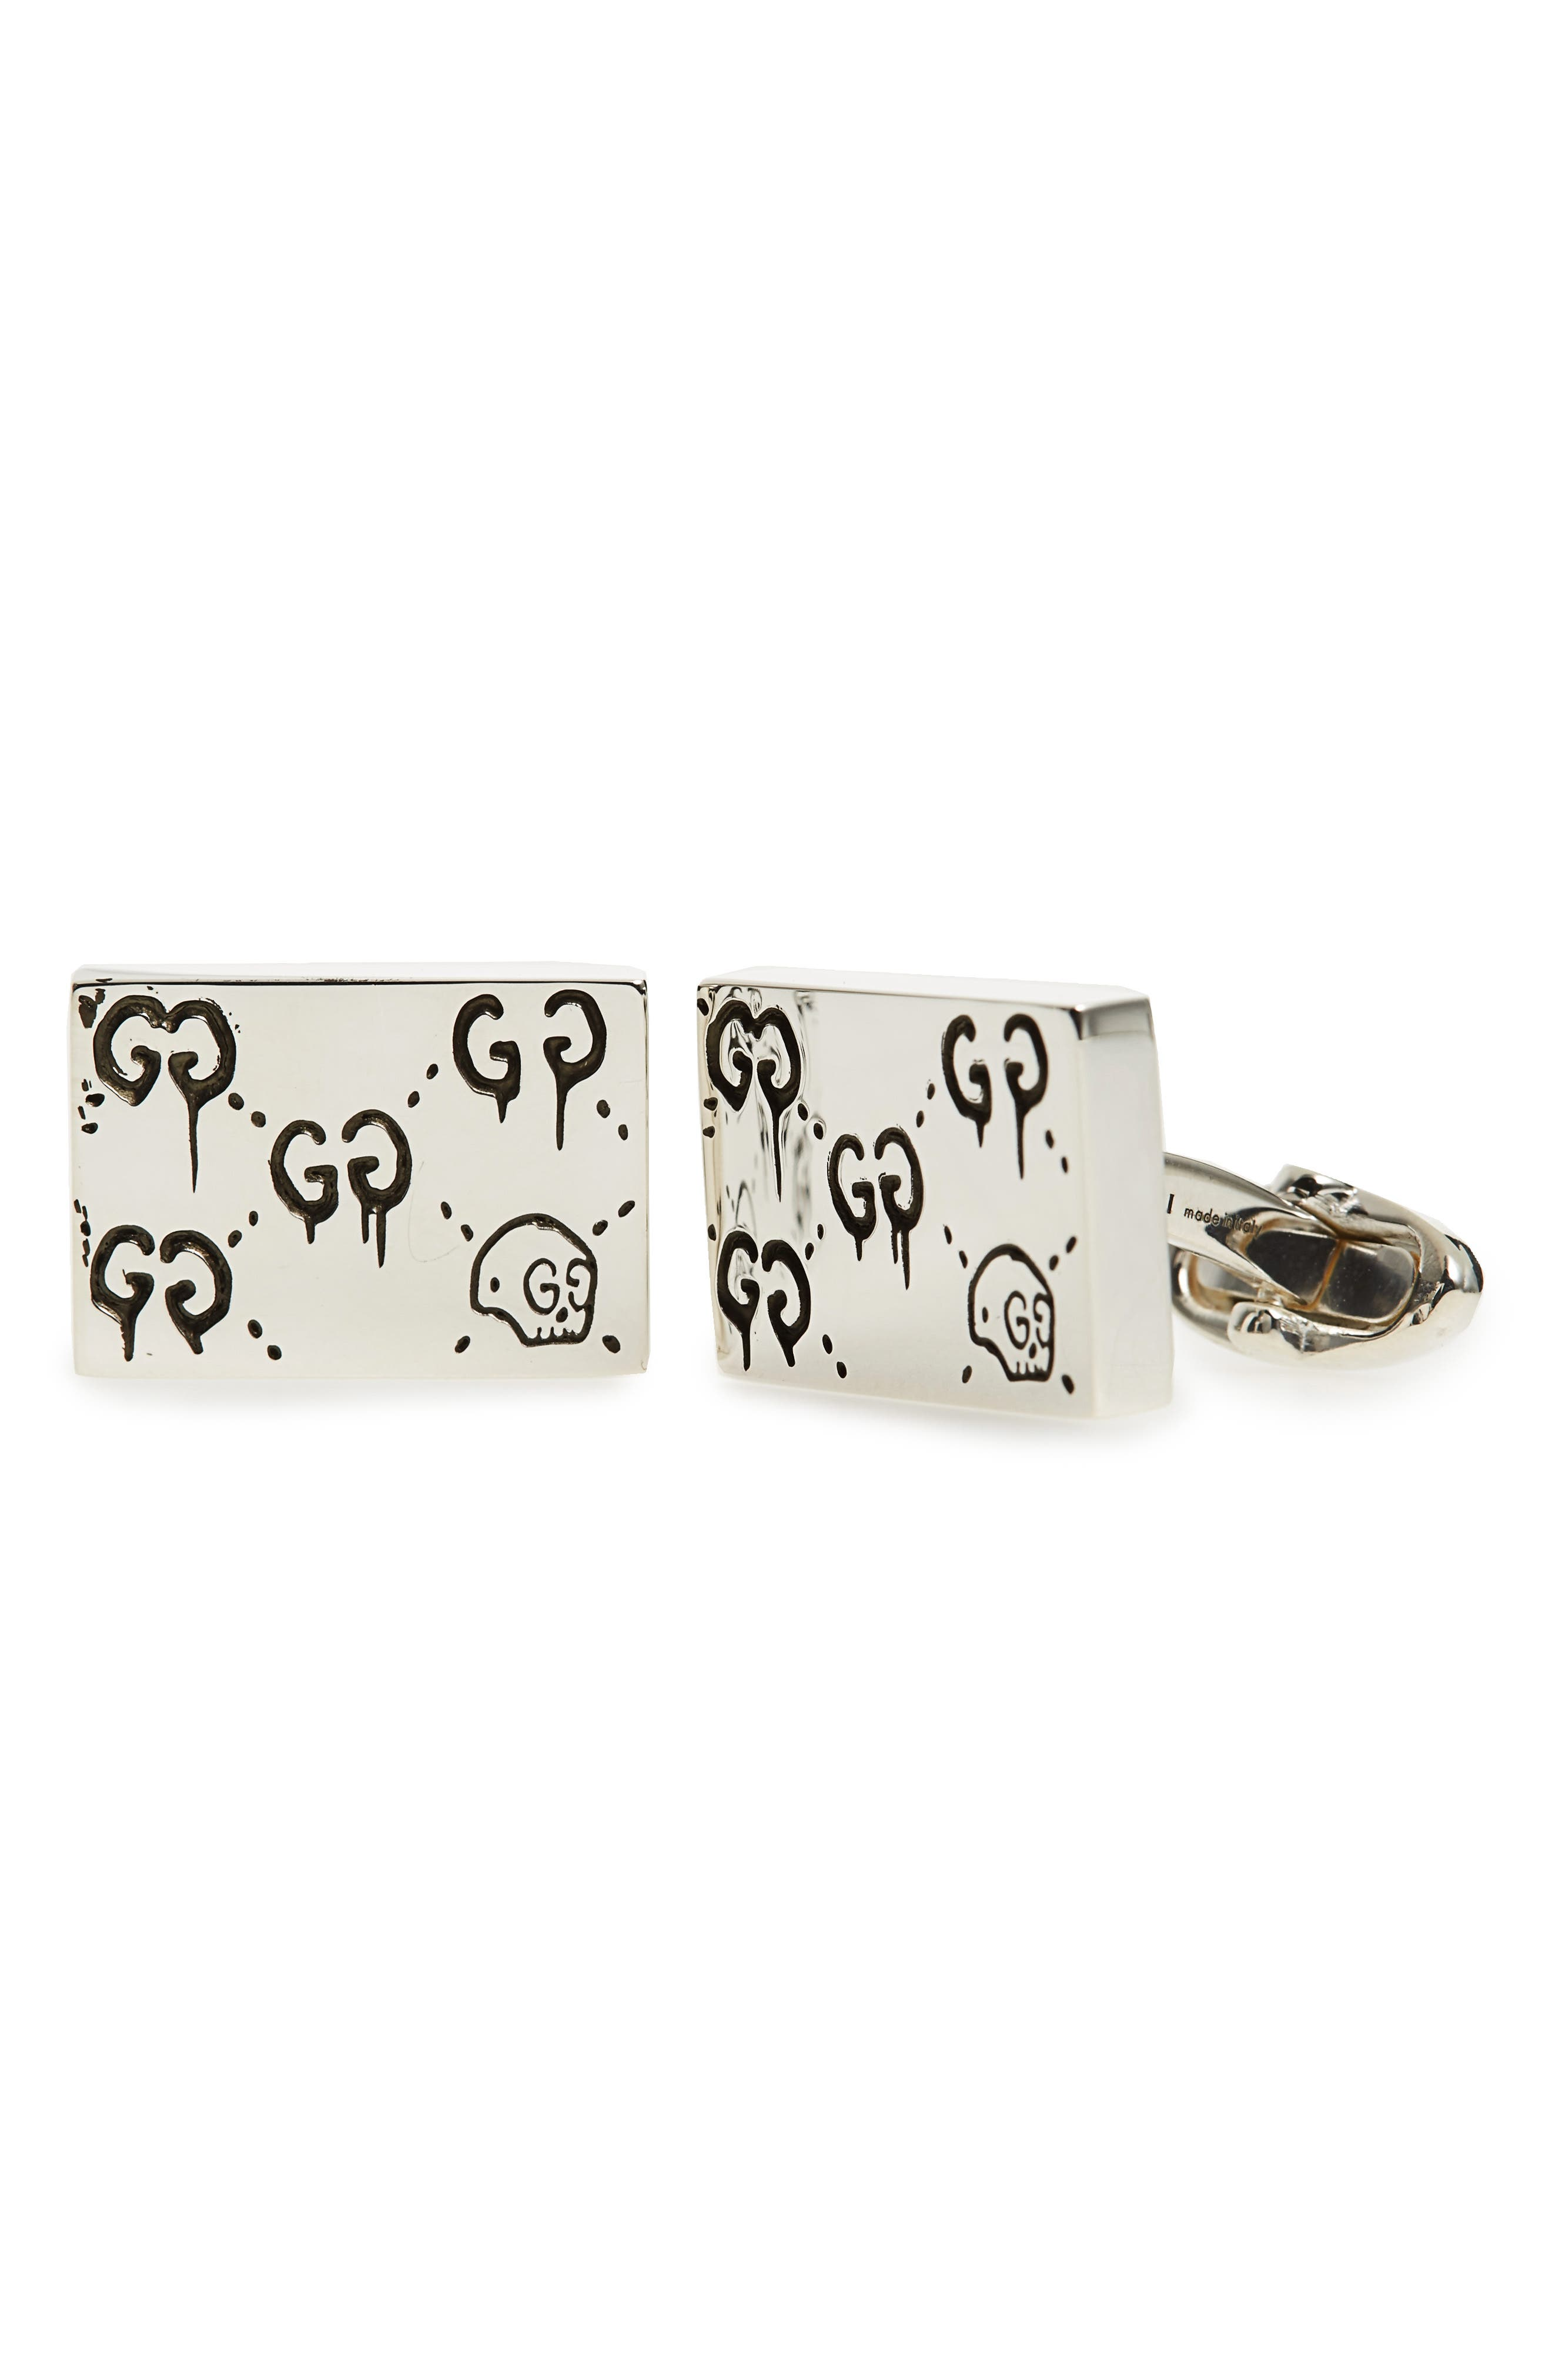 Ghost Motif Cuff Links,                             Main thumbnail 1, color,                             SILVER